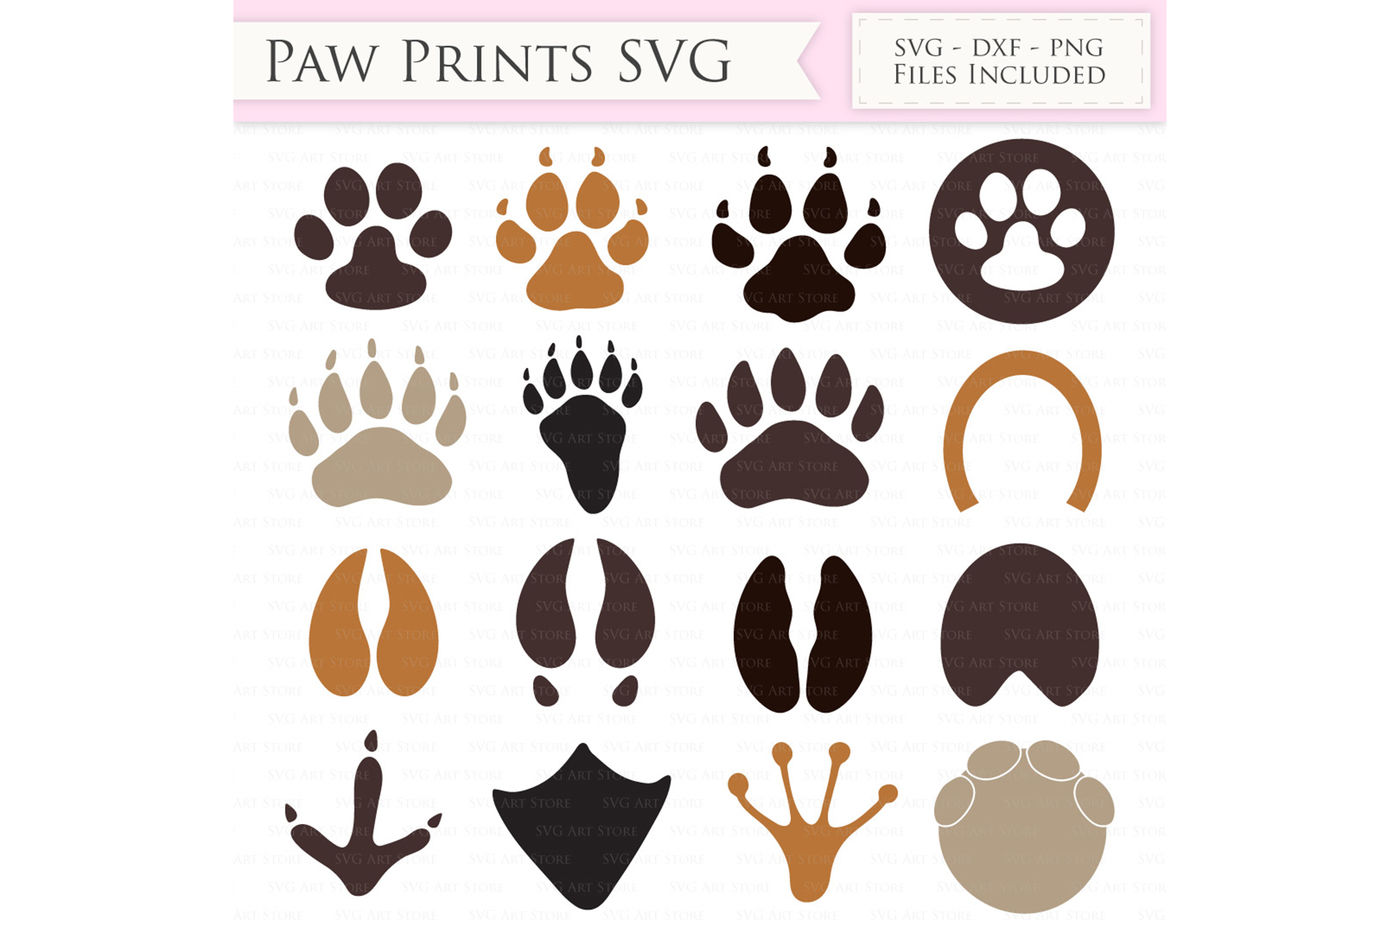 Paw Print Svg Files Animal Paw Print Cut Files By Svgartstore Thehungryjpeg Com 170 free images of paw print. paw print svg files animal paw print